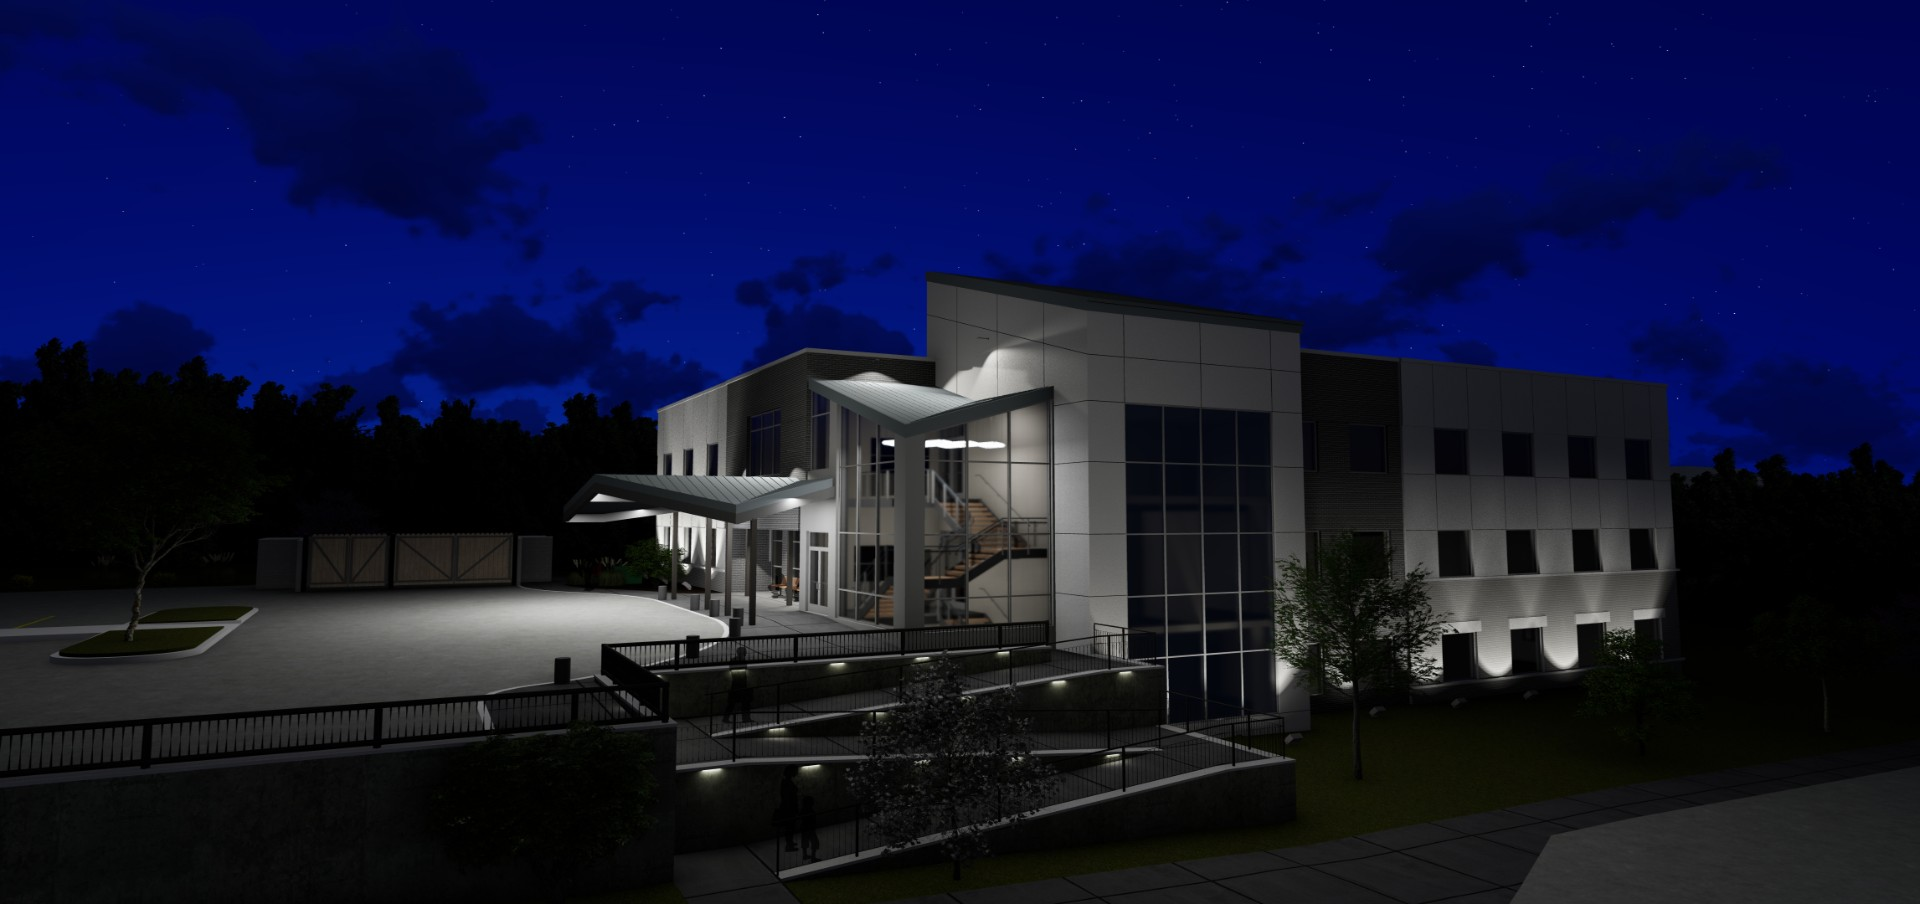 Boone-County-Family-Resources-Exterior-Night-Office-Building